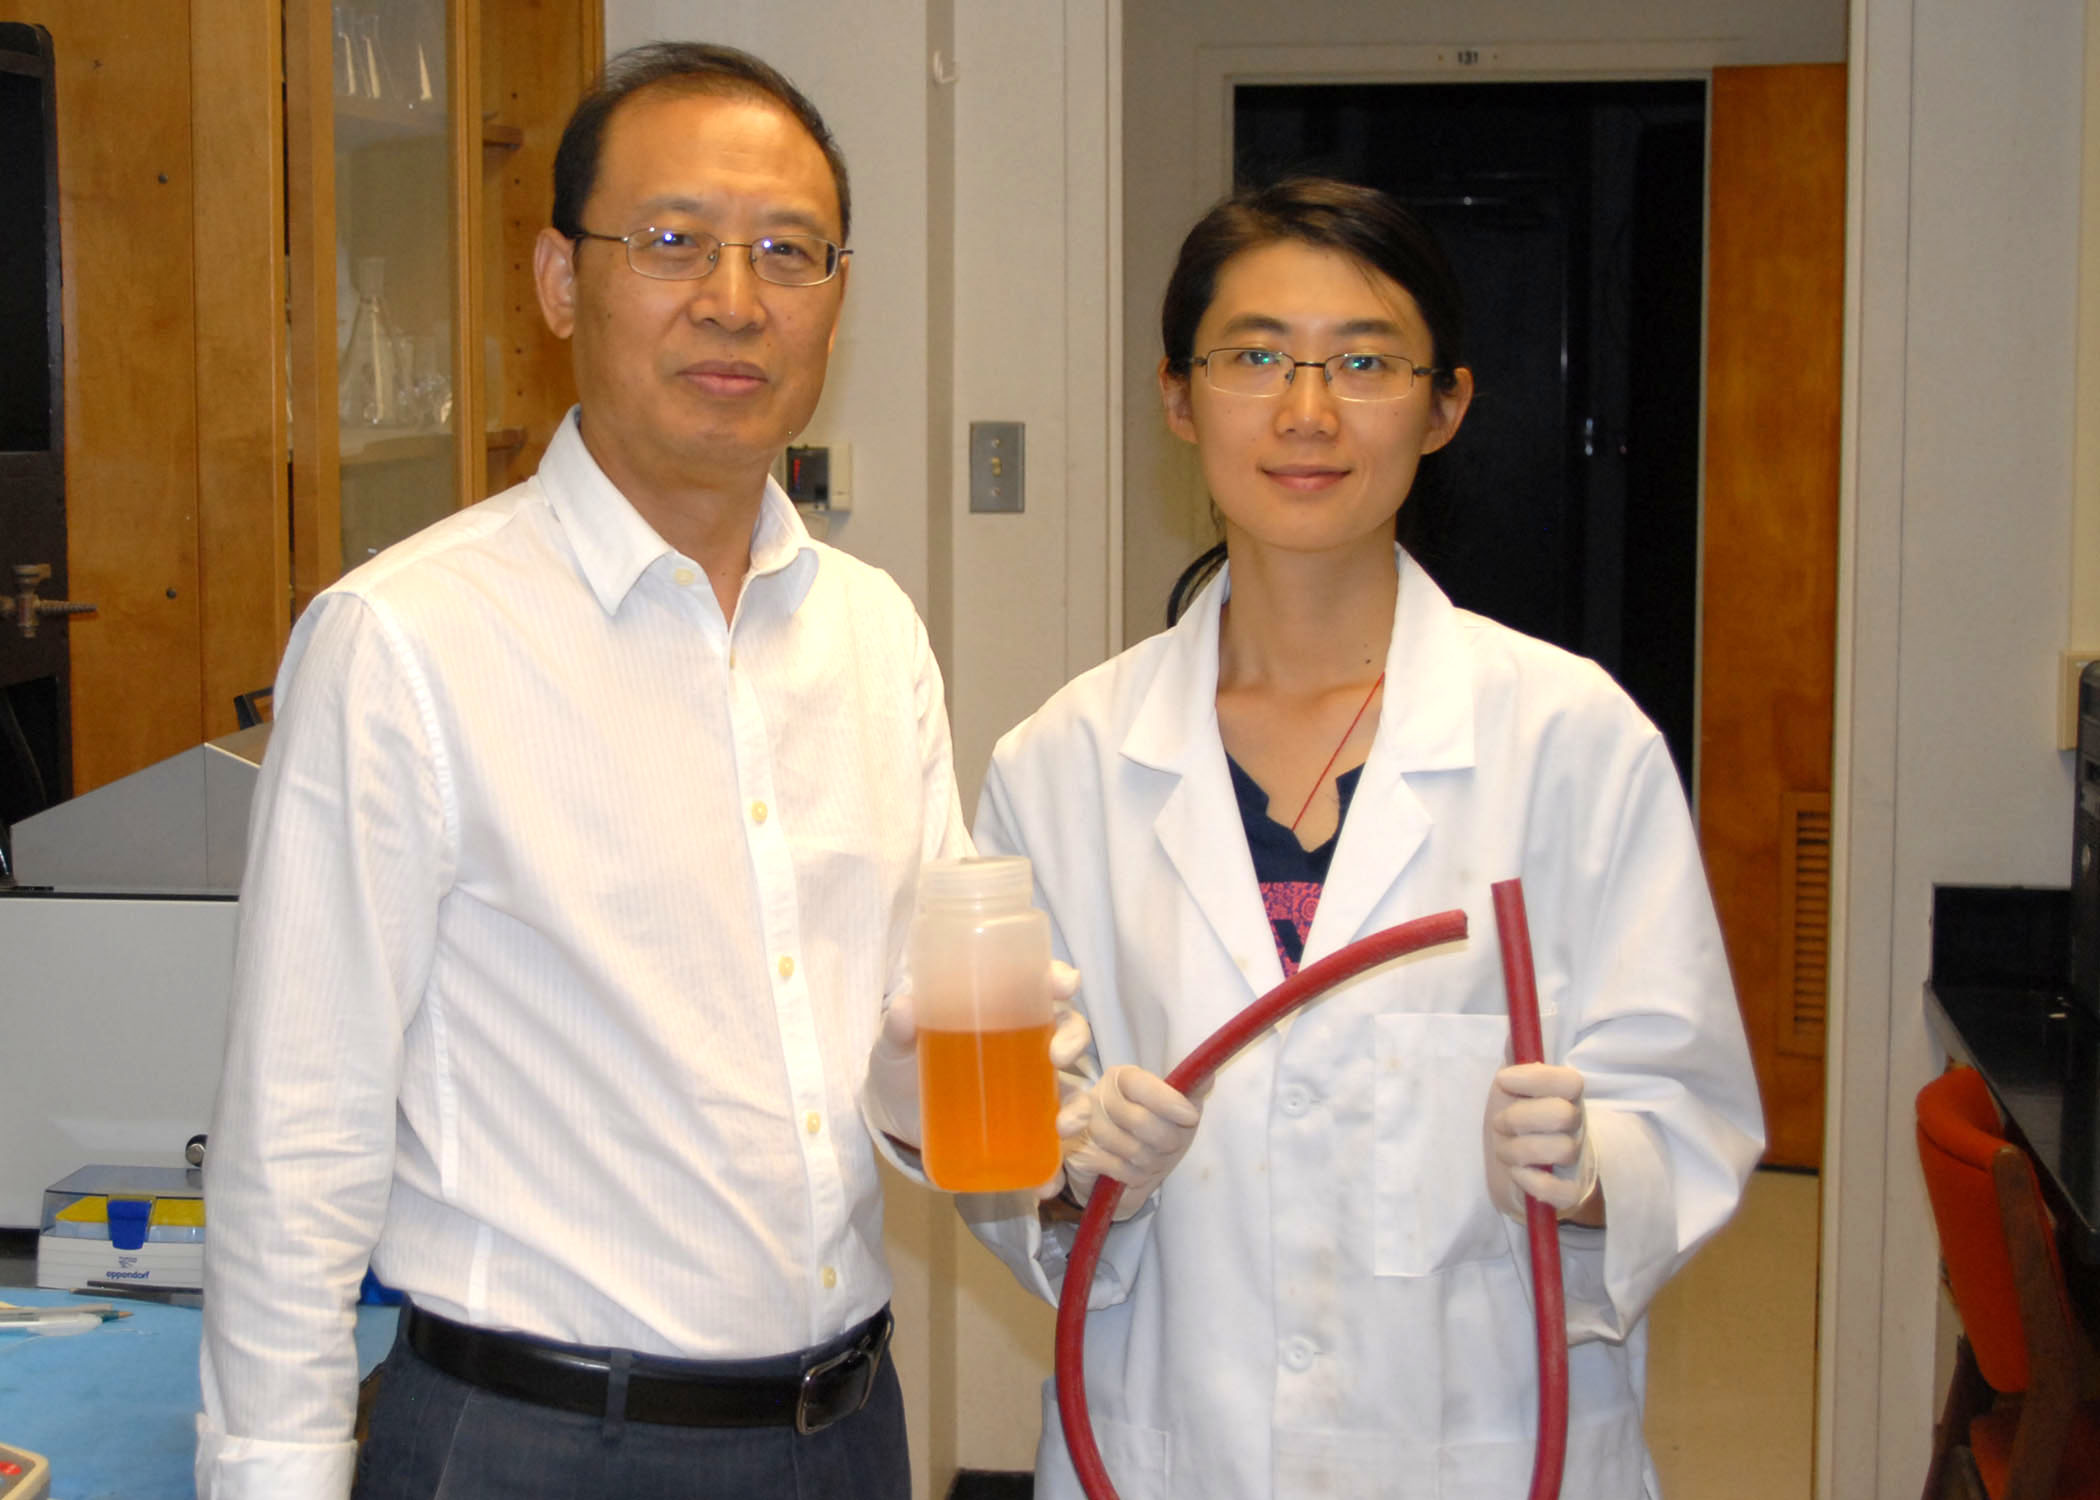 Liu applies pharmaceutical research to sprayer cleanout